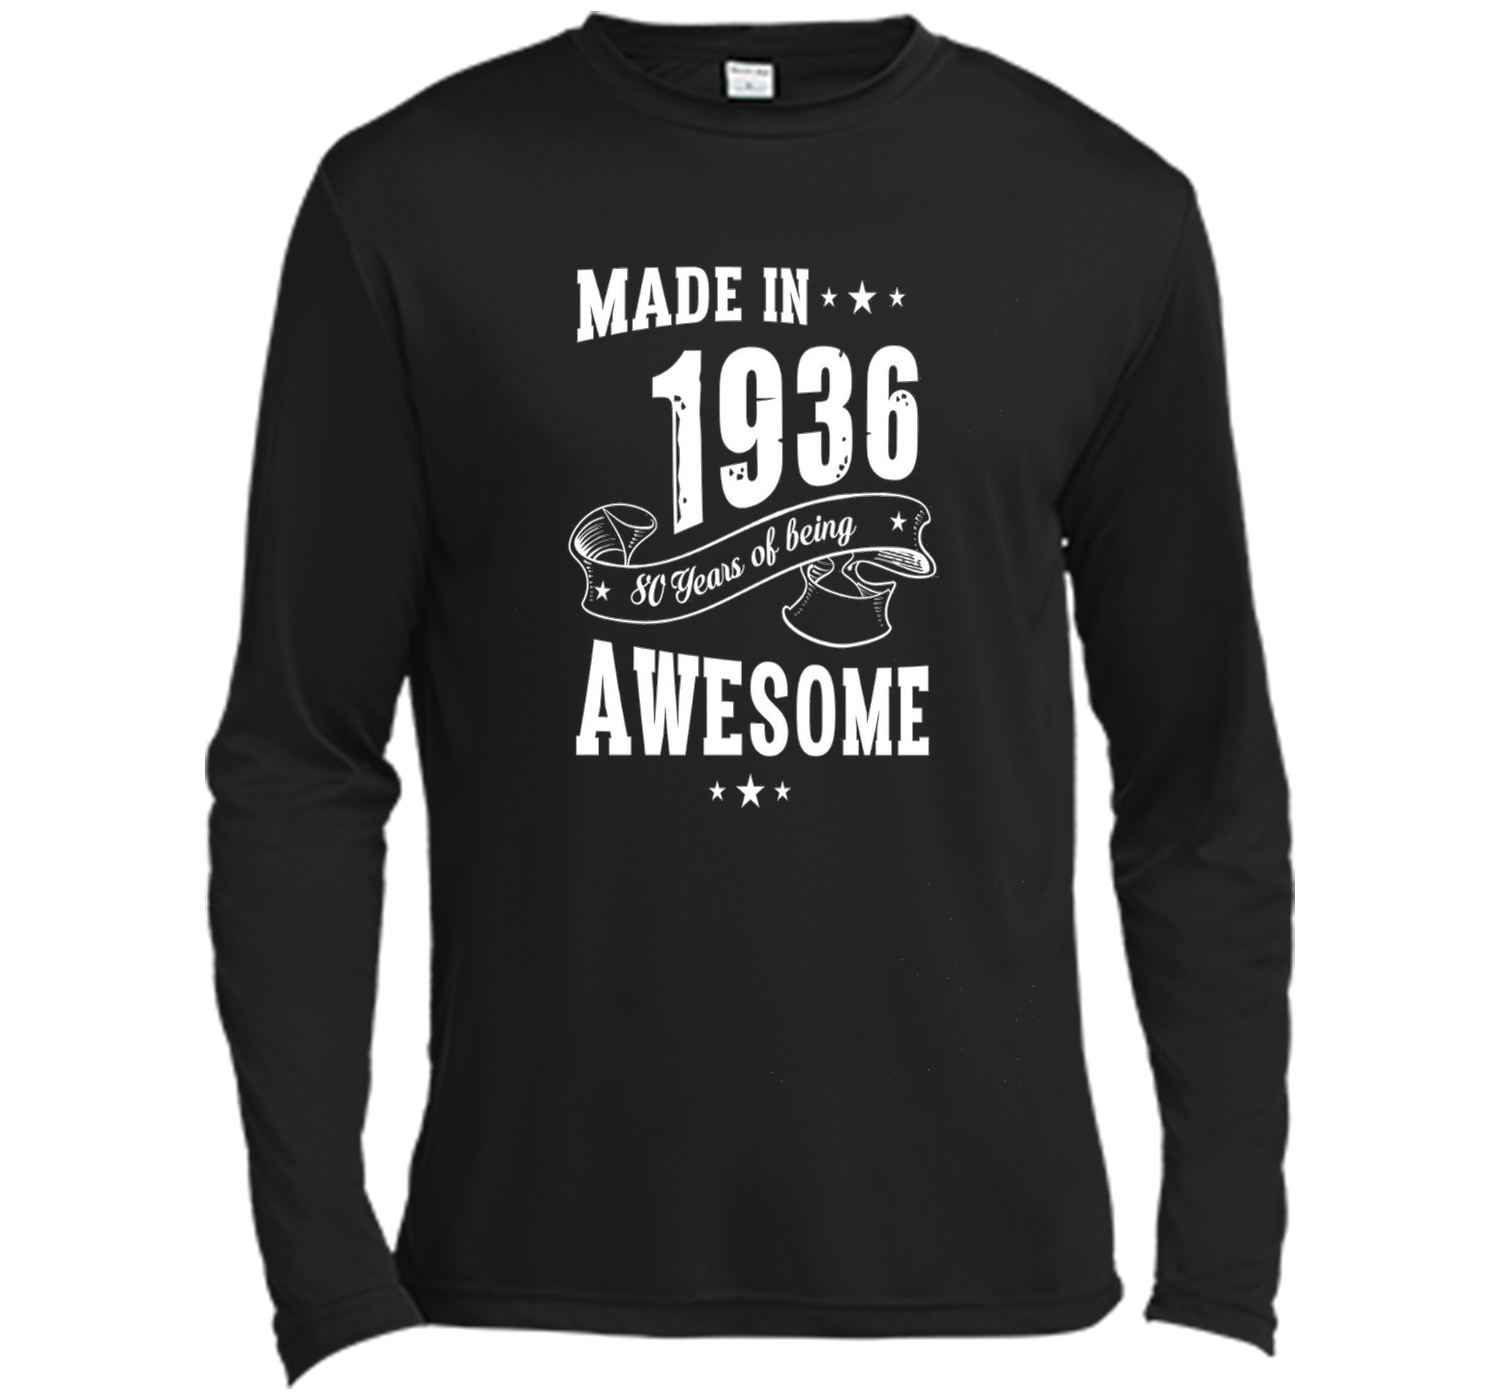 80th Birthday Shirt Made In 1936 80 Years Of Being Awesome